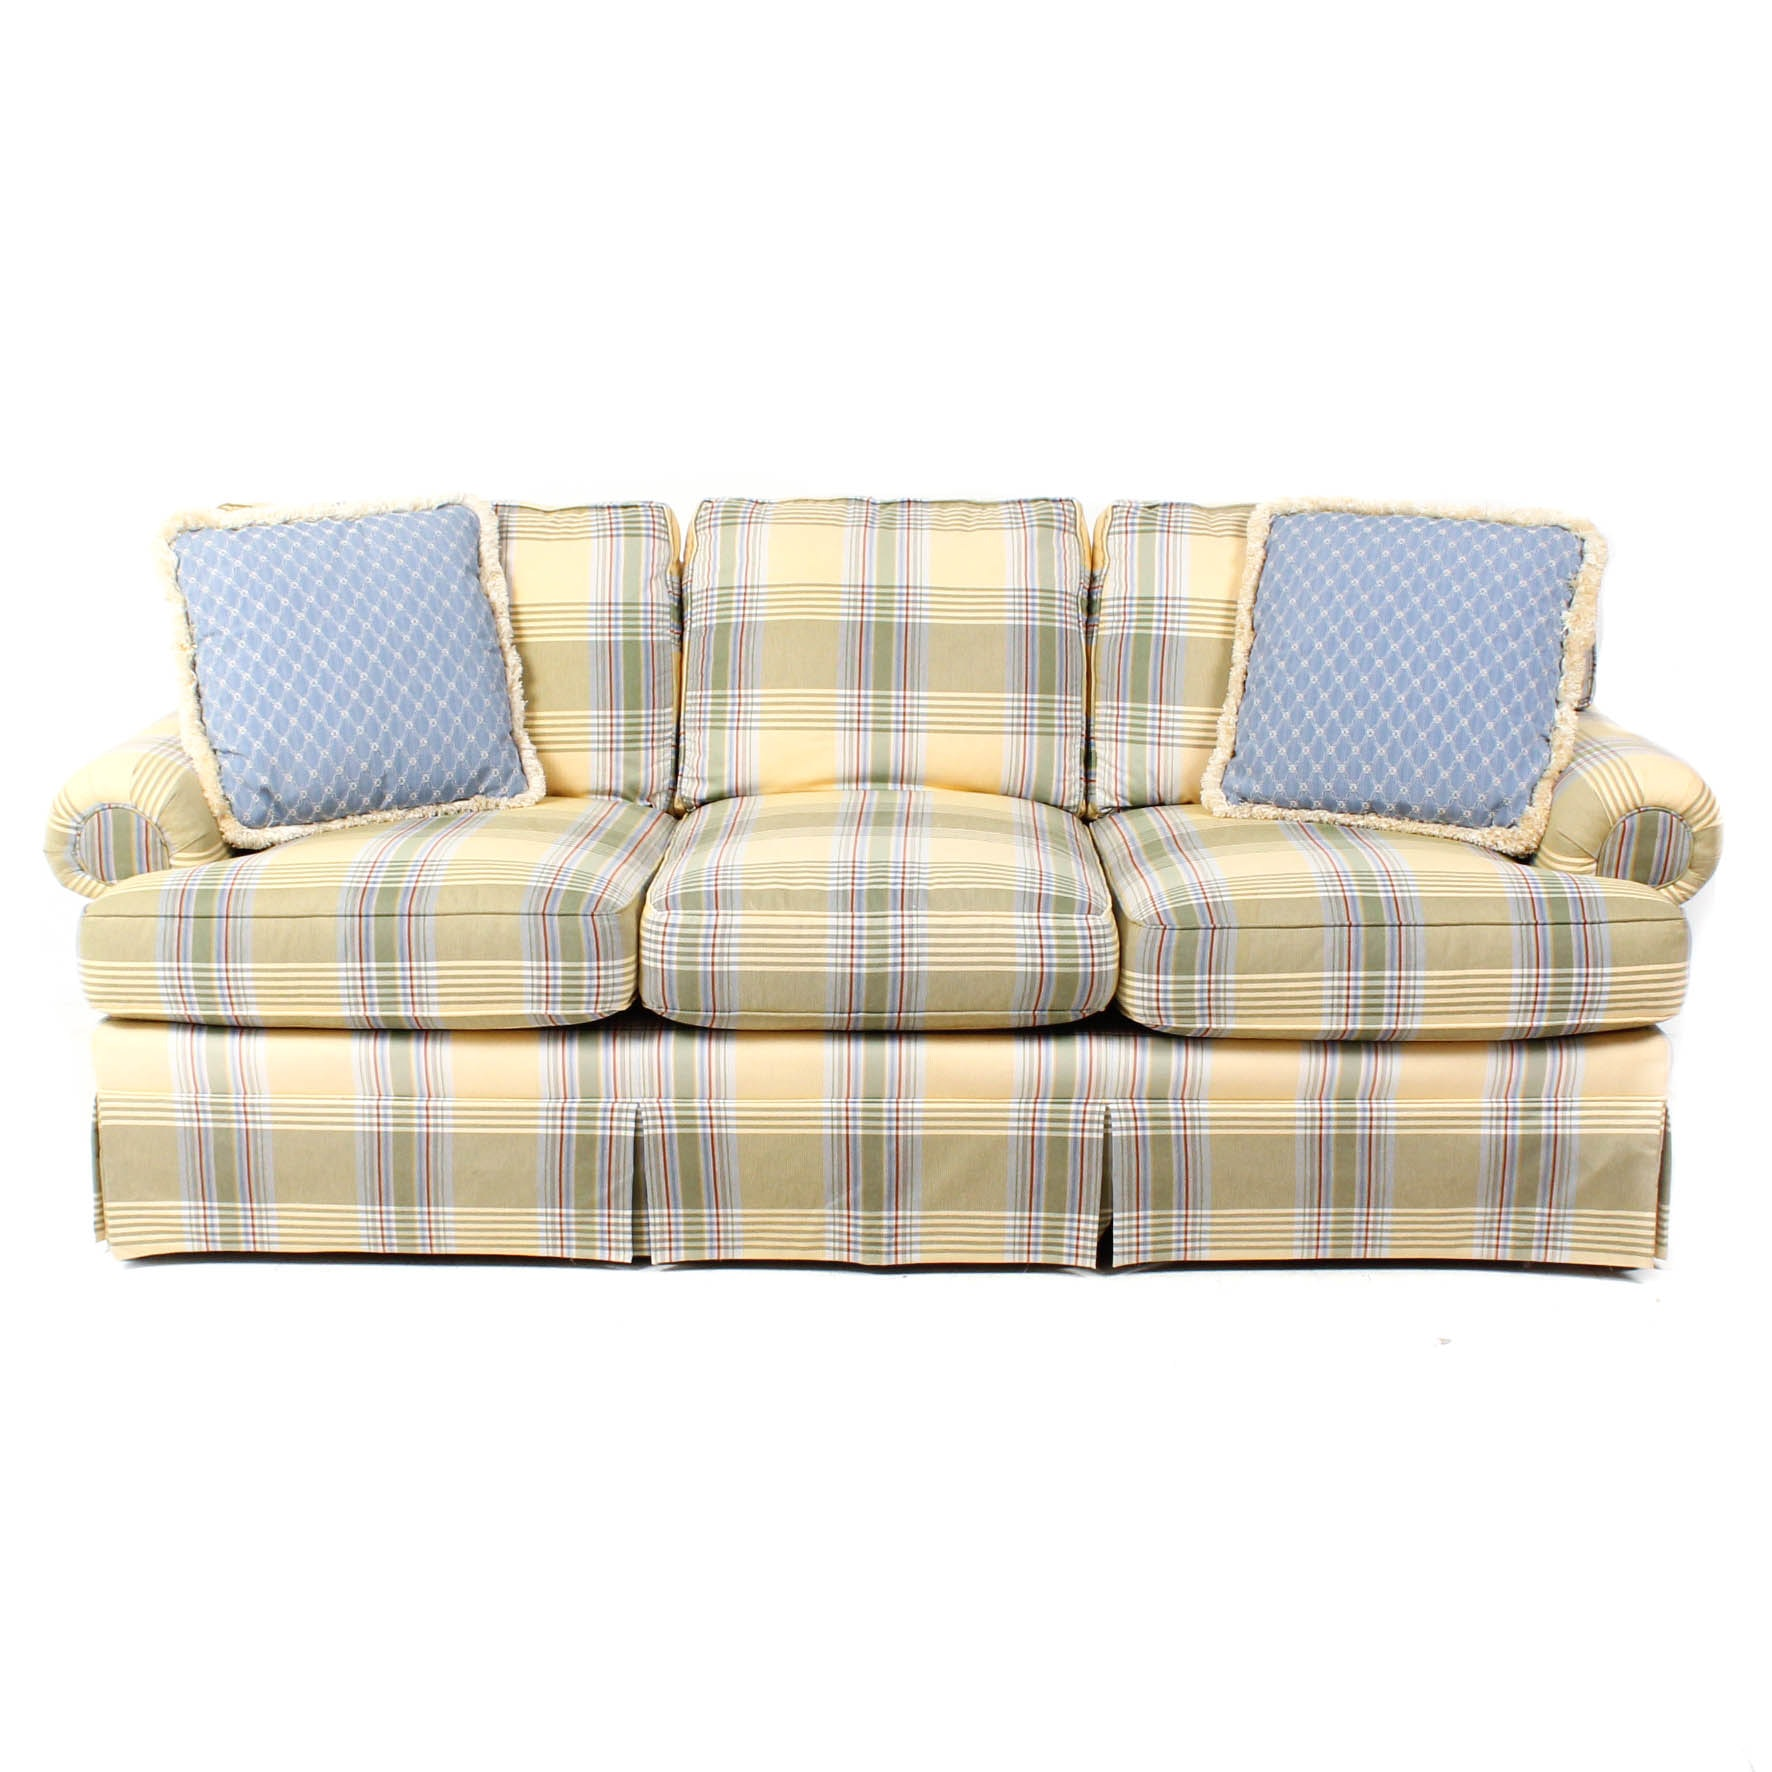 Taylor & King Plaid Couch